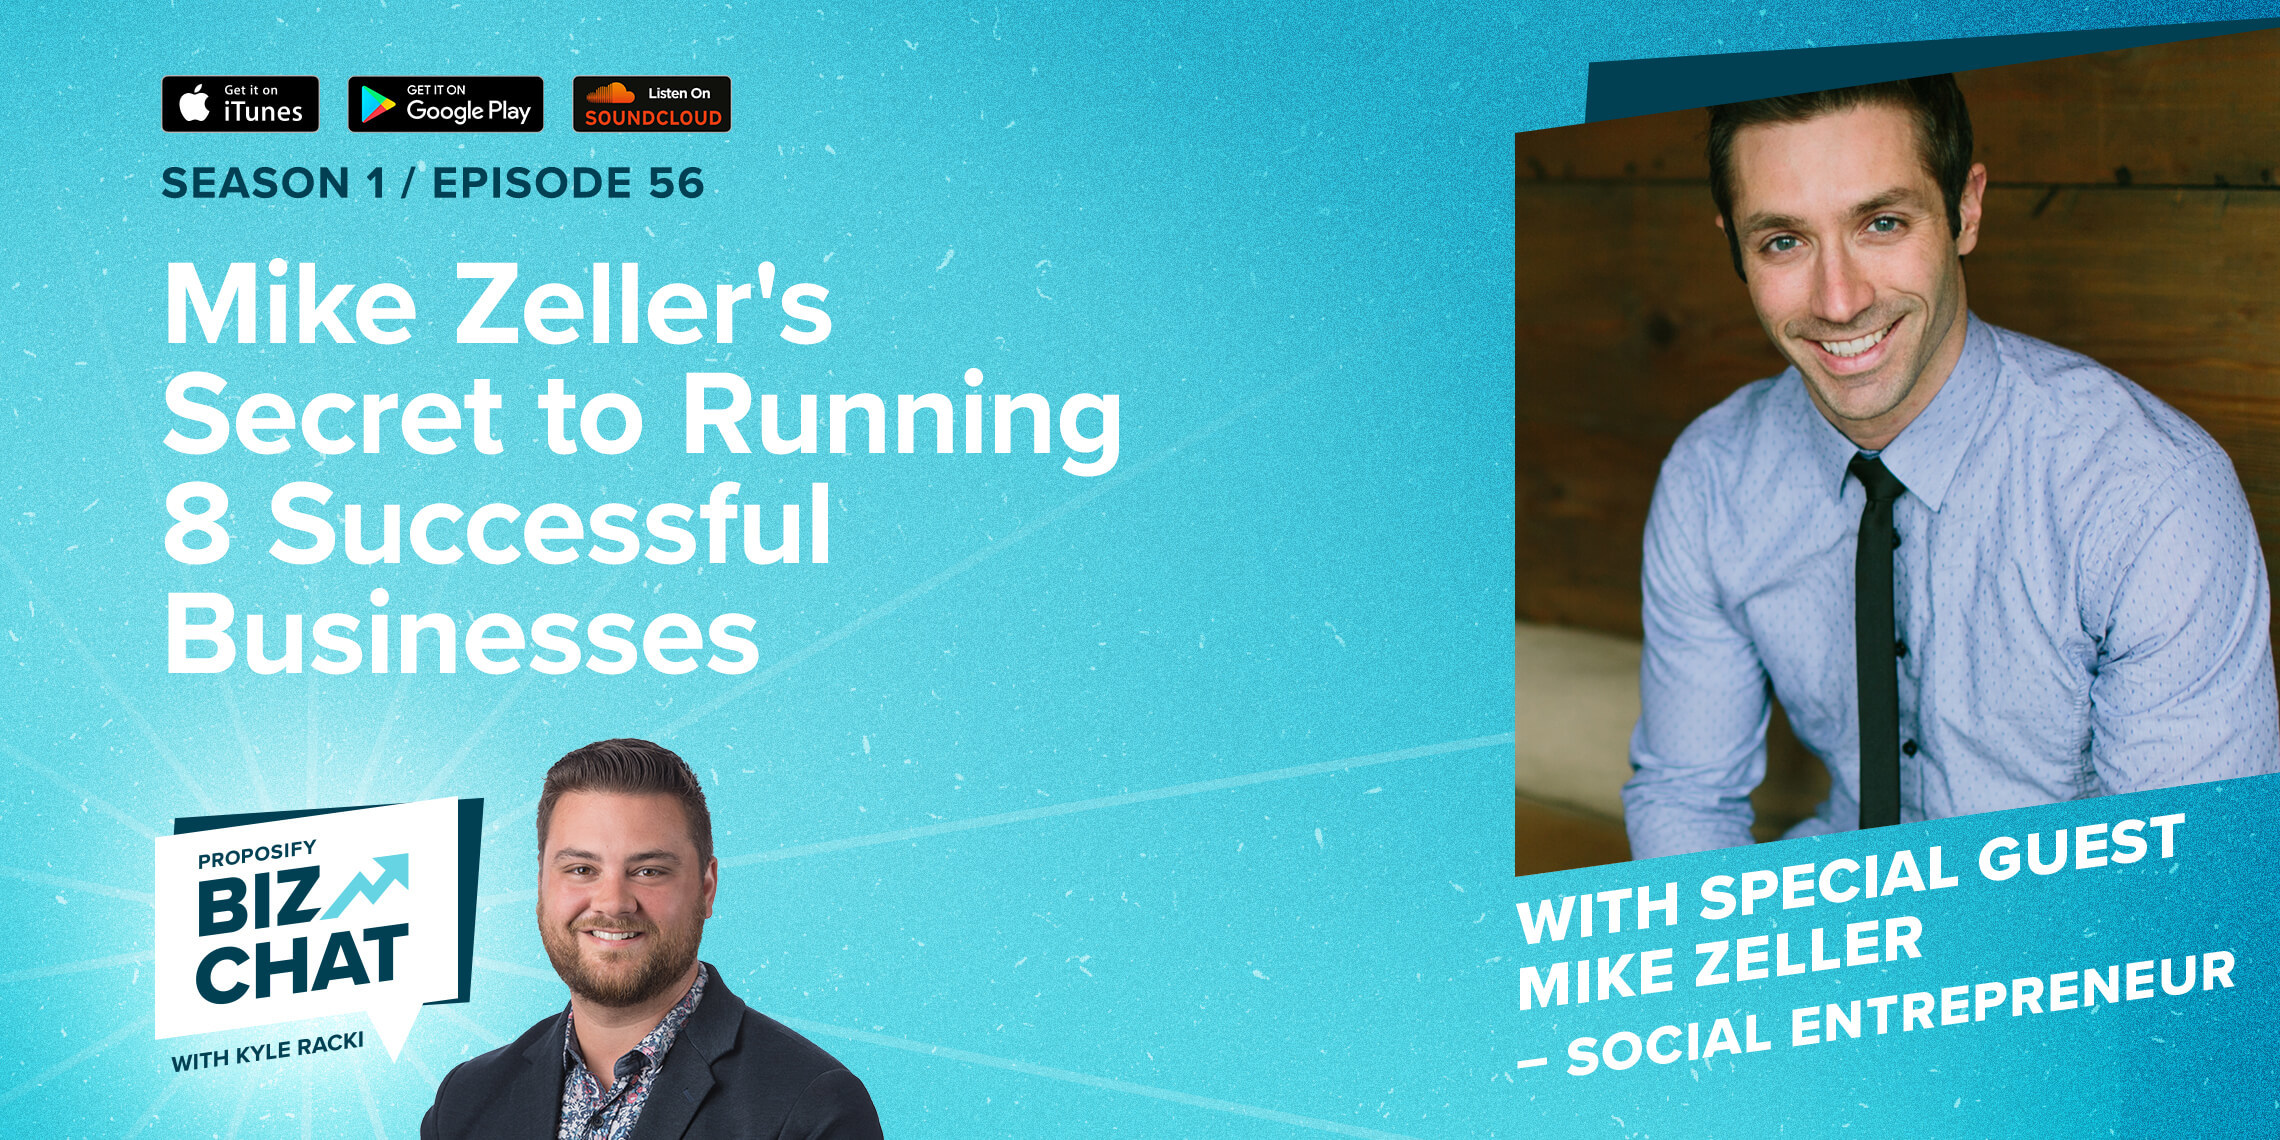 Mike Zeller's Secret to Running 8 Successful Businesses